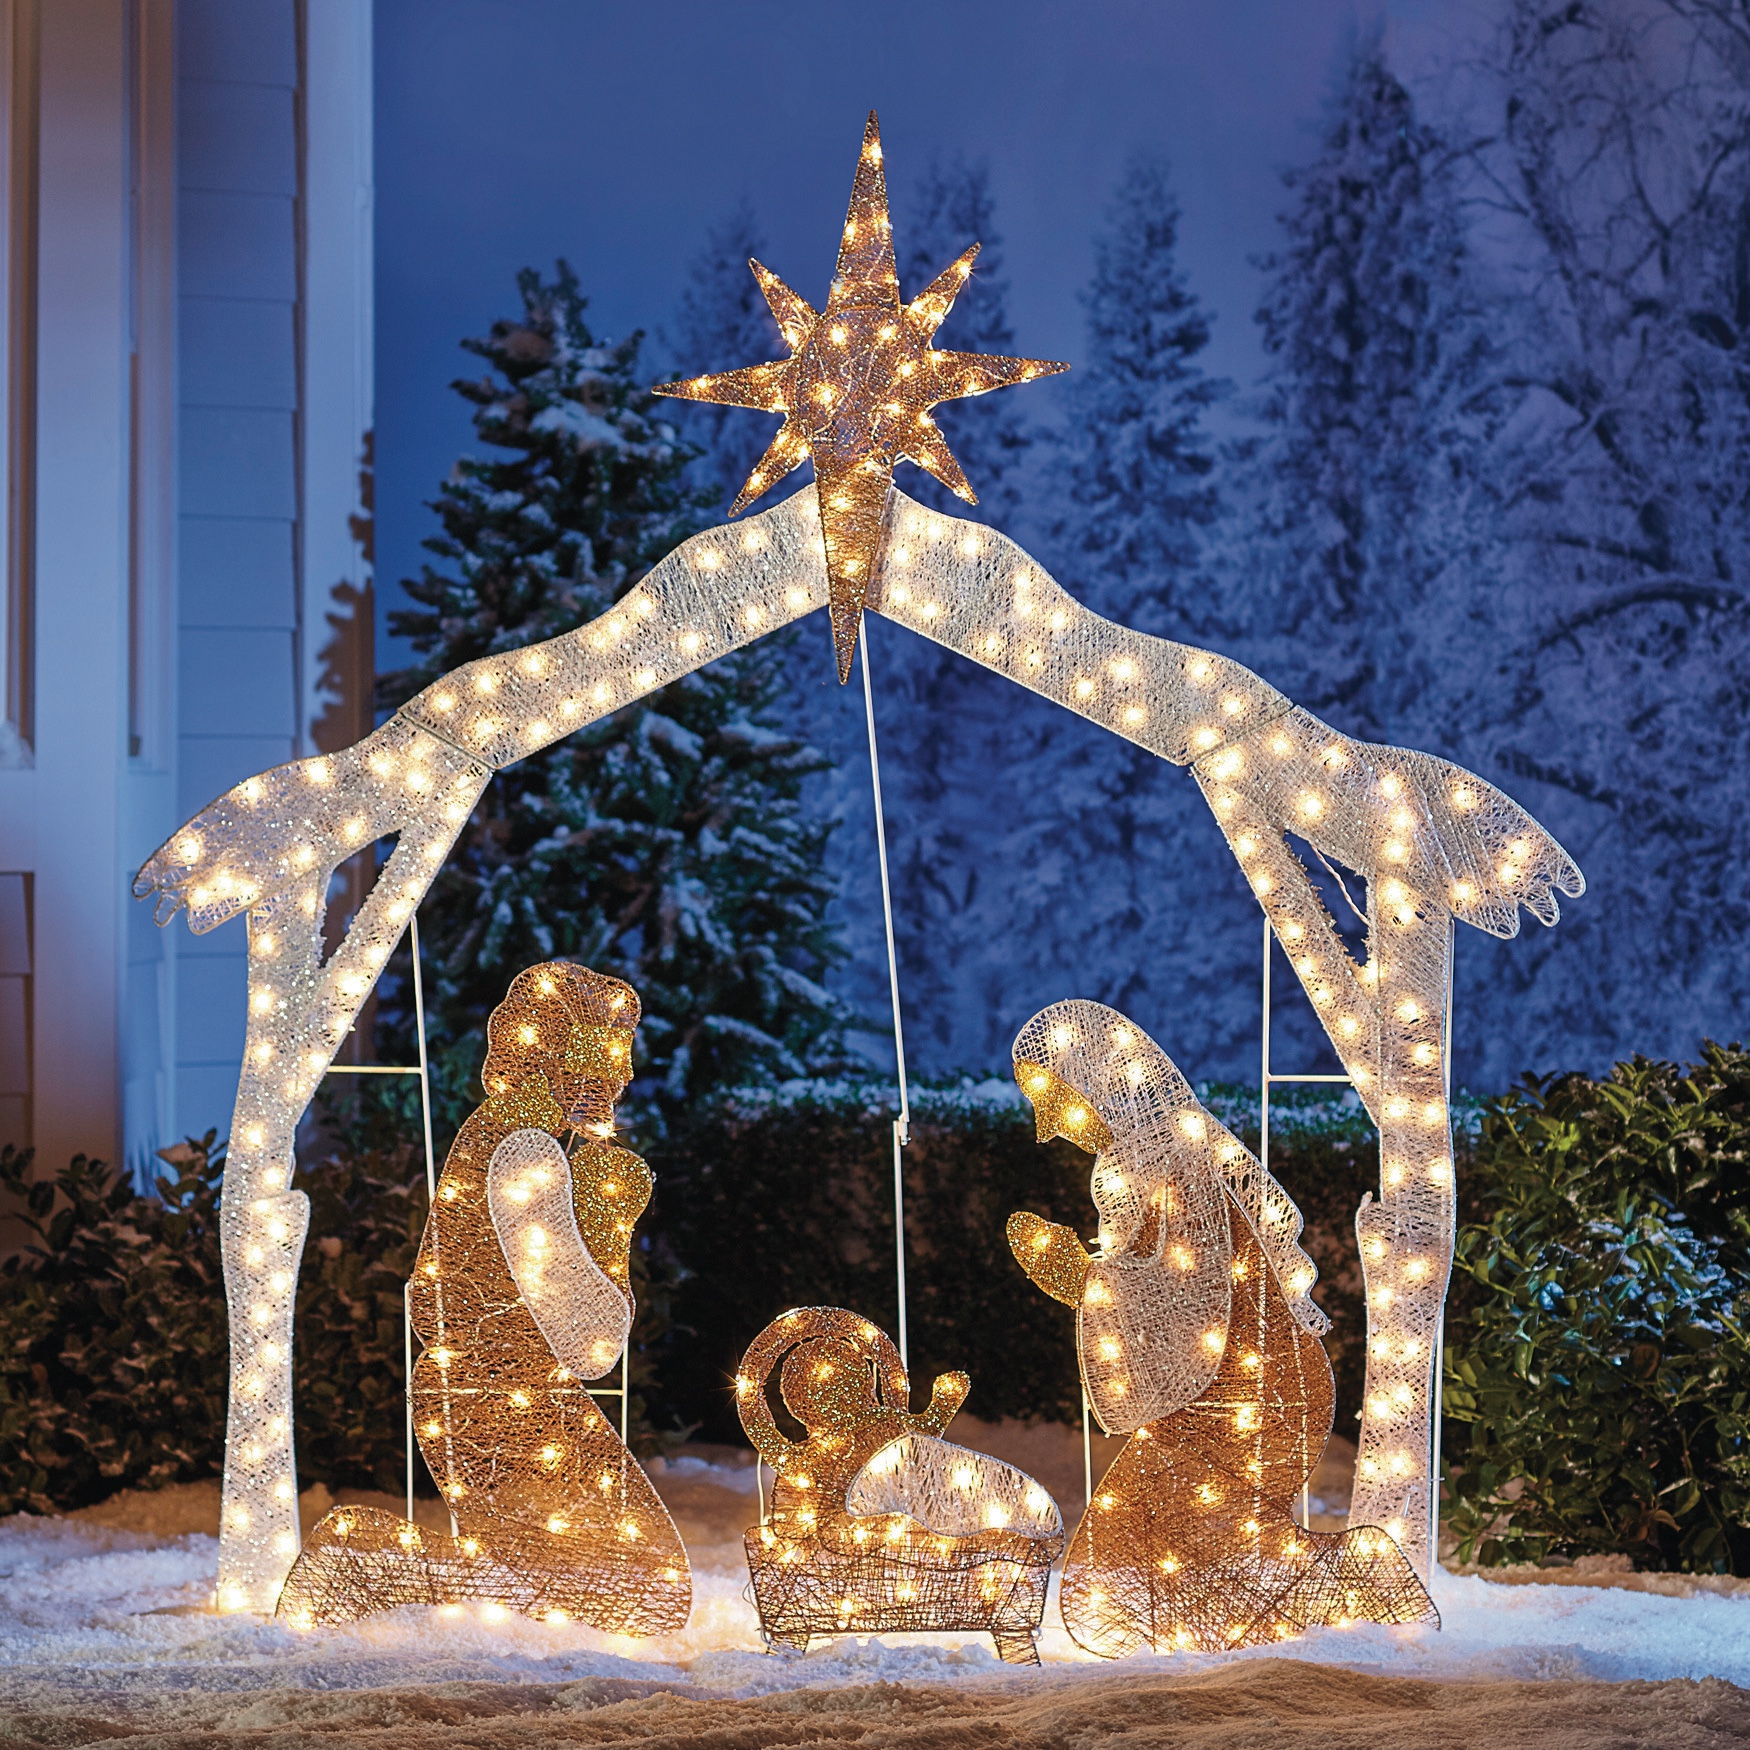 Crystal Splendor Outdoor Nativity Scene Christmas